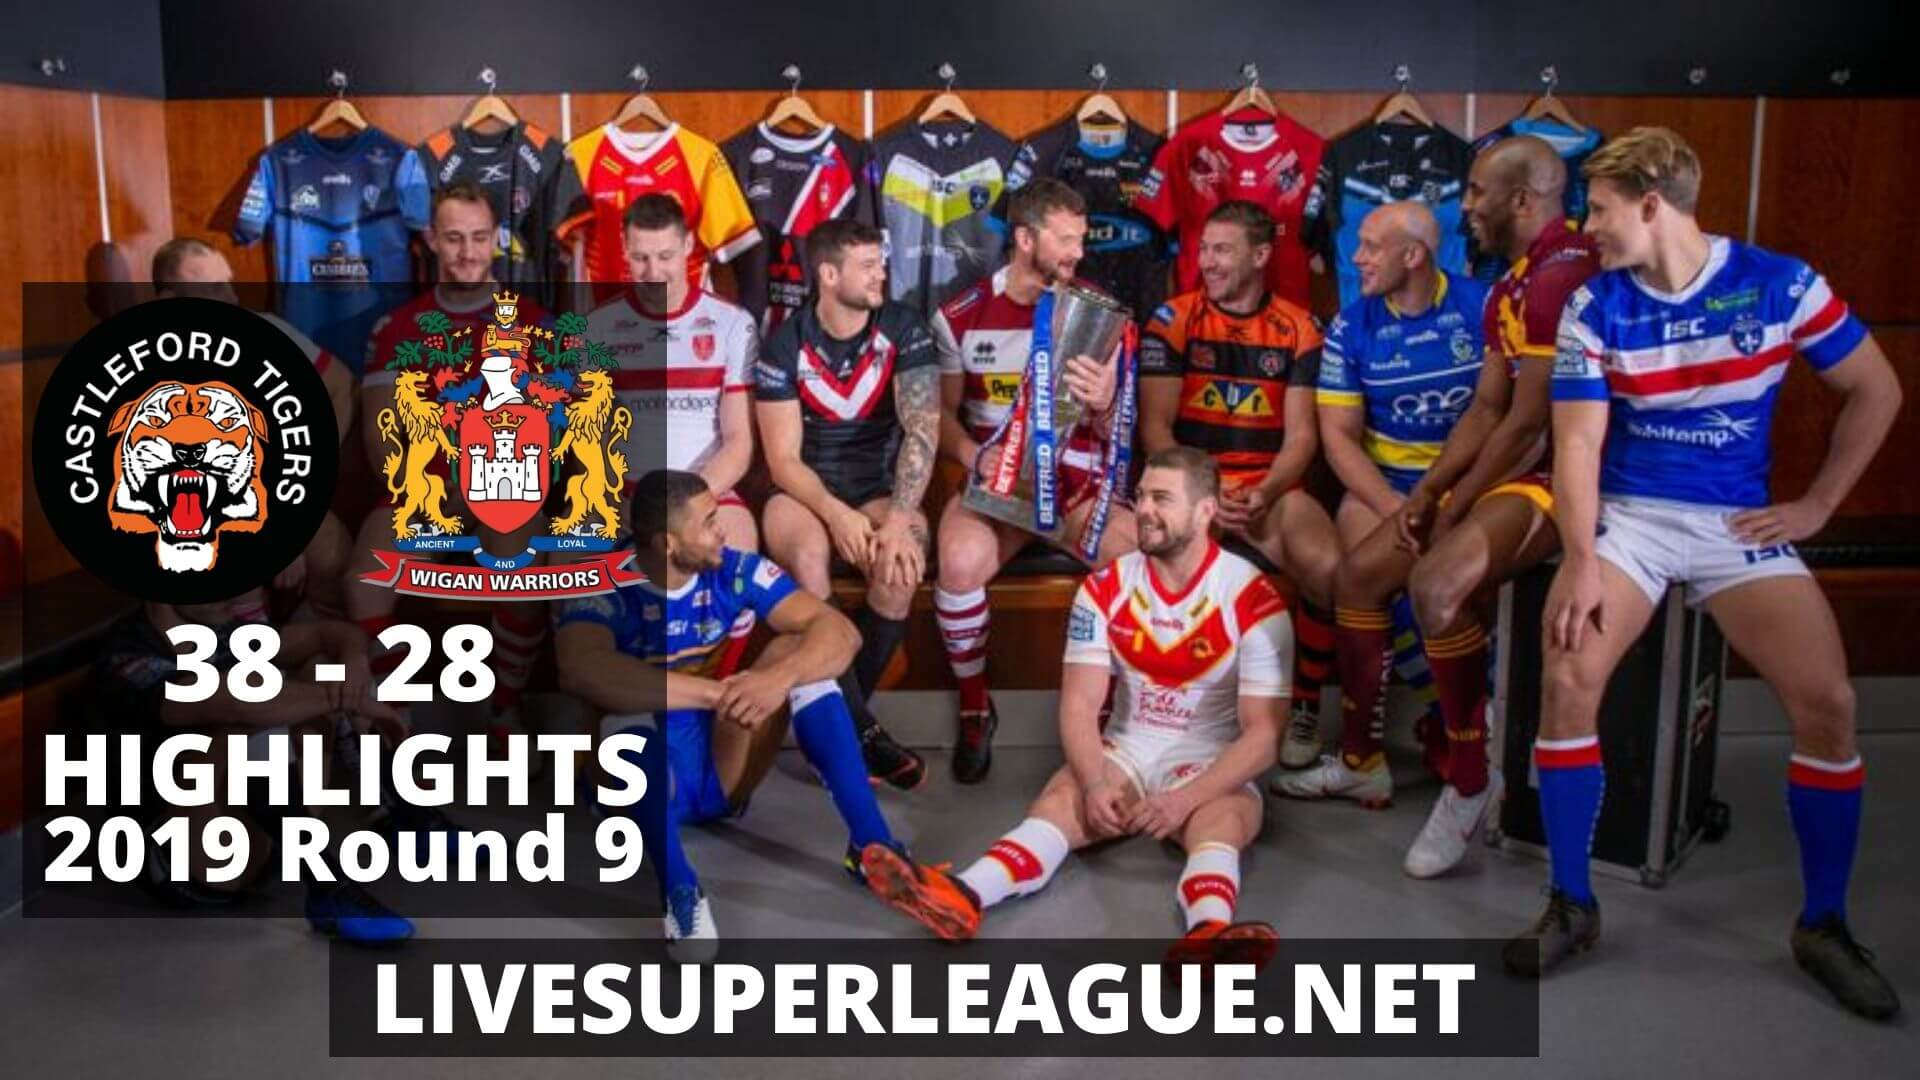 Castleford Tigers vs Wigan Warriors Highlights 2019 Round 9